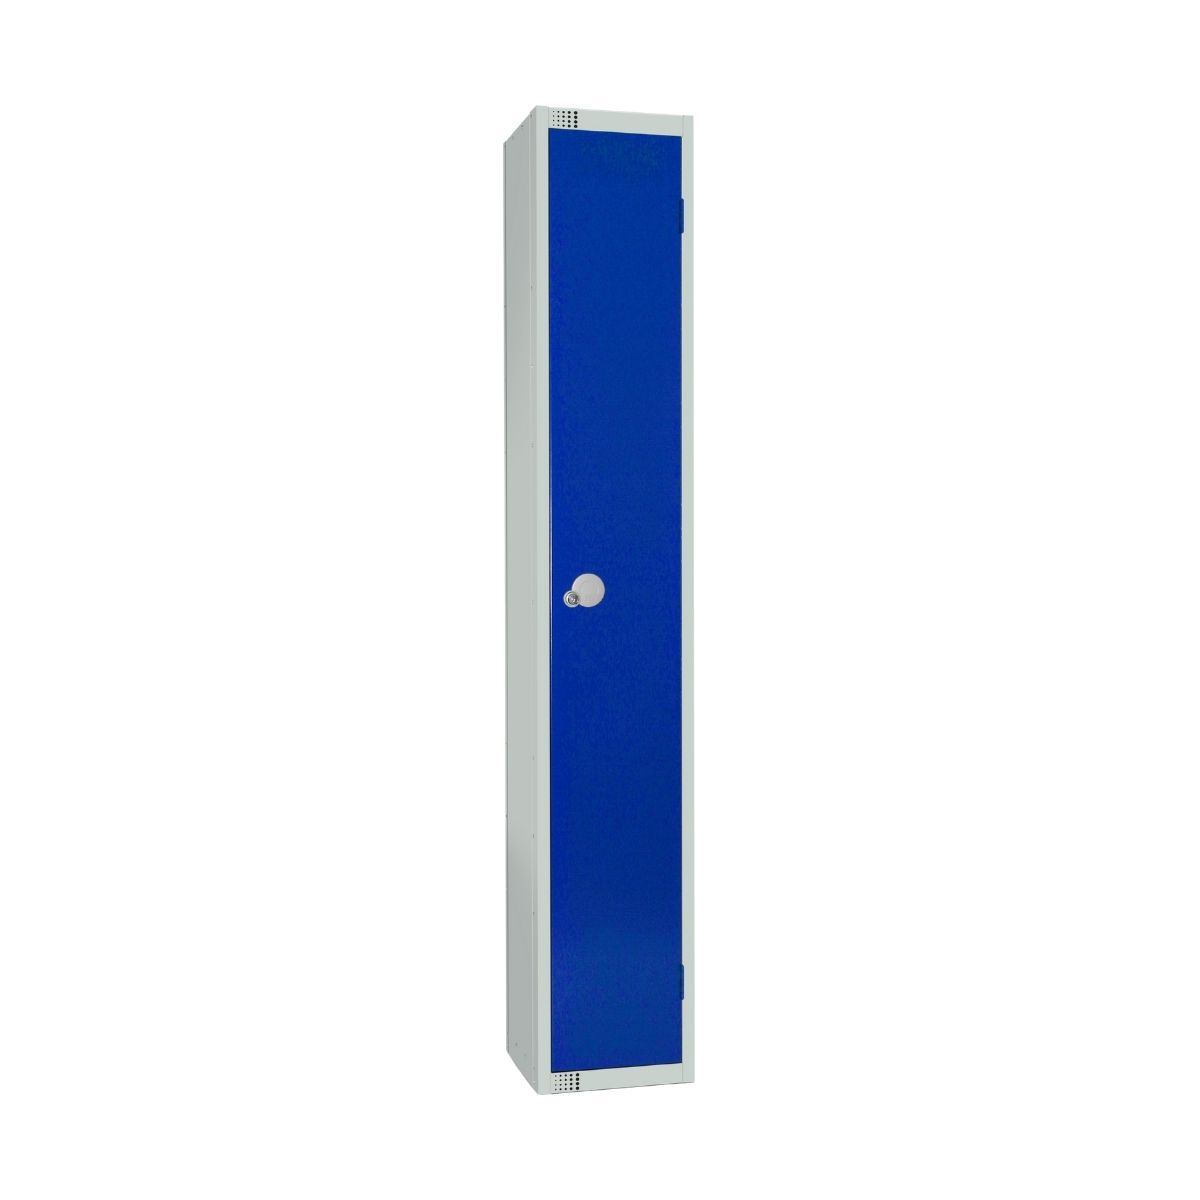 JP0033 One Door Compartment Locker 1800 x 300 x 300